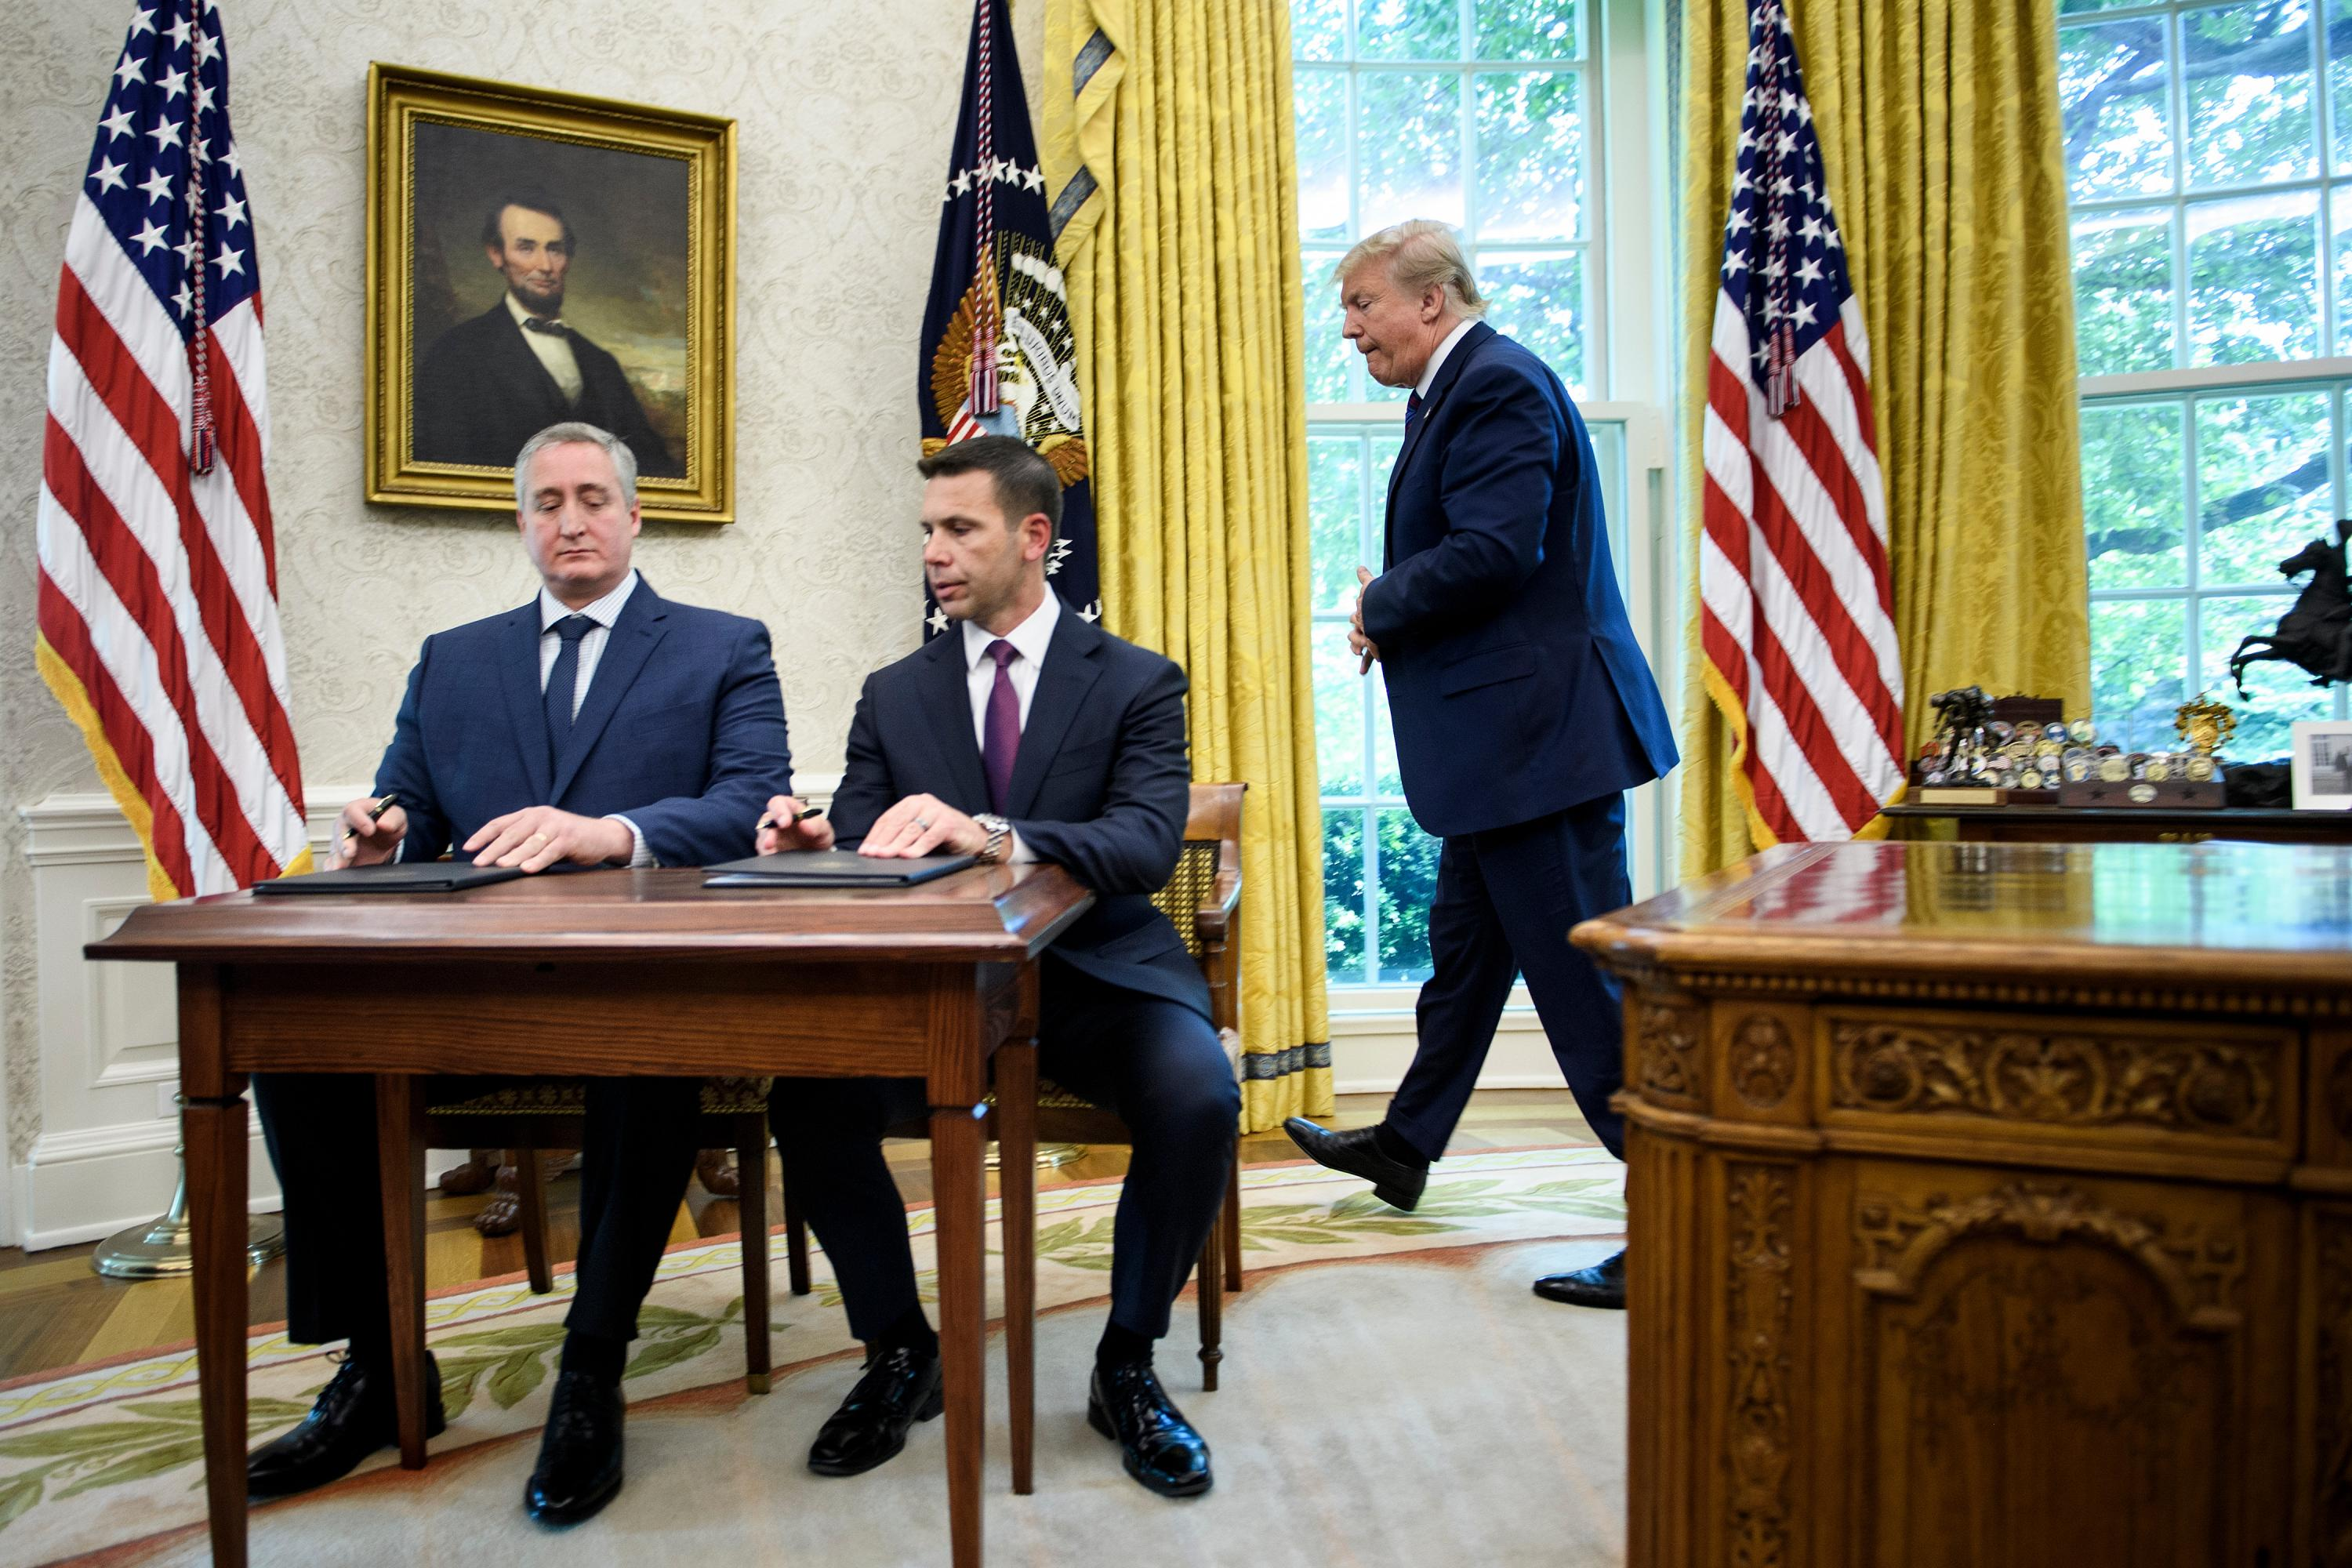 US President Donald Trump walks to watch as Guatemala's Interior Minister Enrique Degenhart (L) and Acting US Secretary of Homeland Security Kevin K. McAleenan (C) sign a safe-third agreement, regarding people seeking asylum while passing through Guatemala, in the Oval Office of the White House on July 26, 2019 in Washington, DC. (Photo by Brendan Smialowski / AFP)